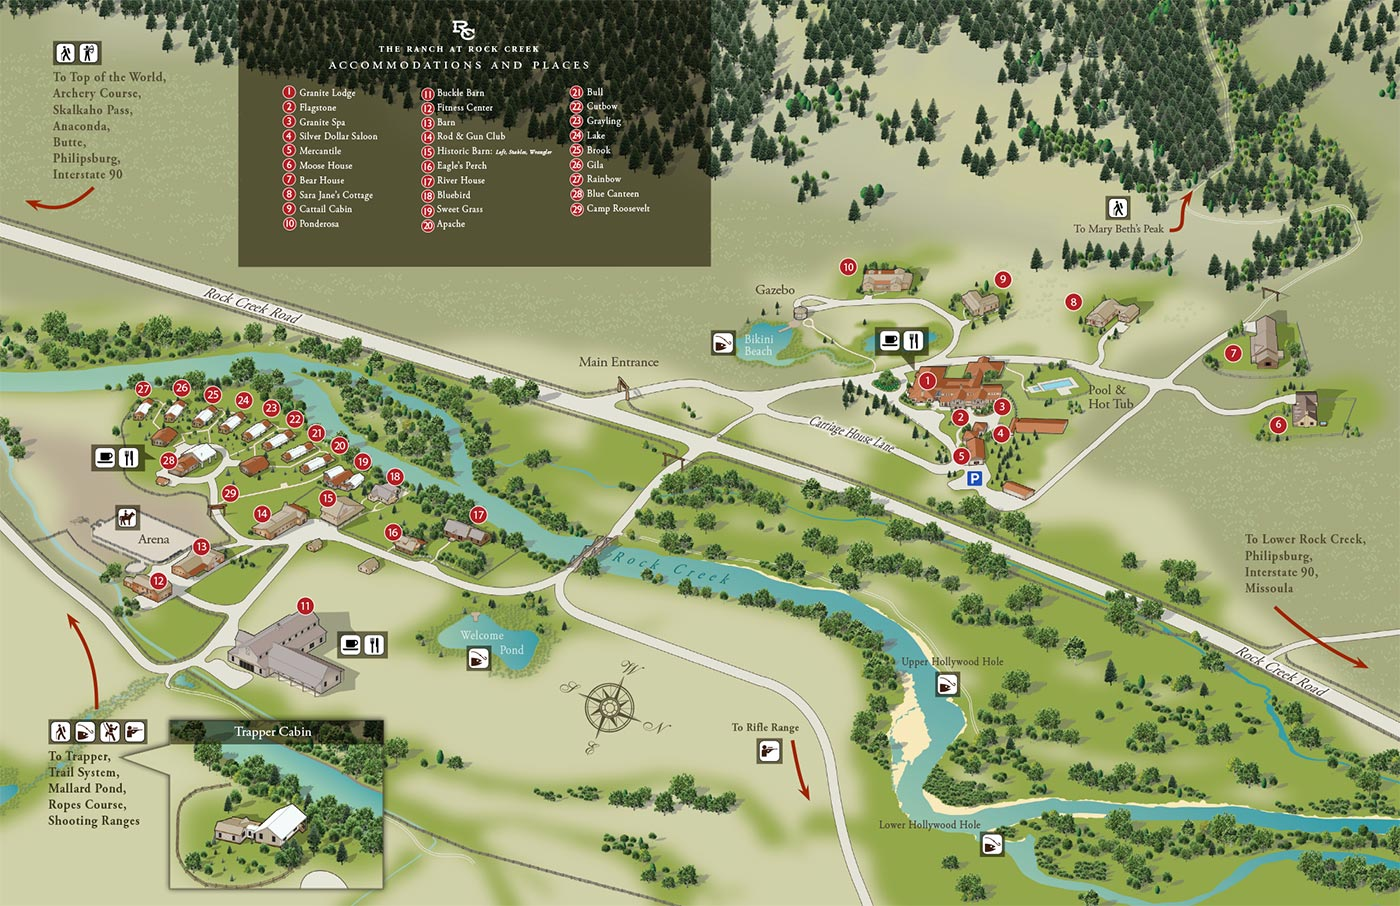 The Ranch At Rock Creek Illustrated Map